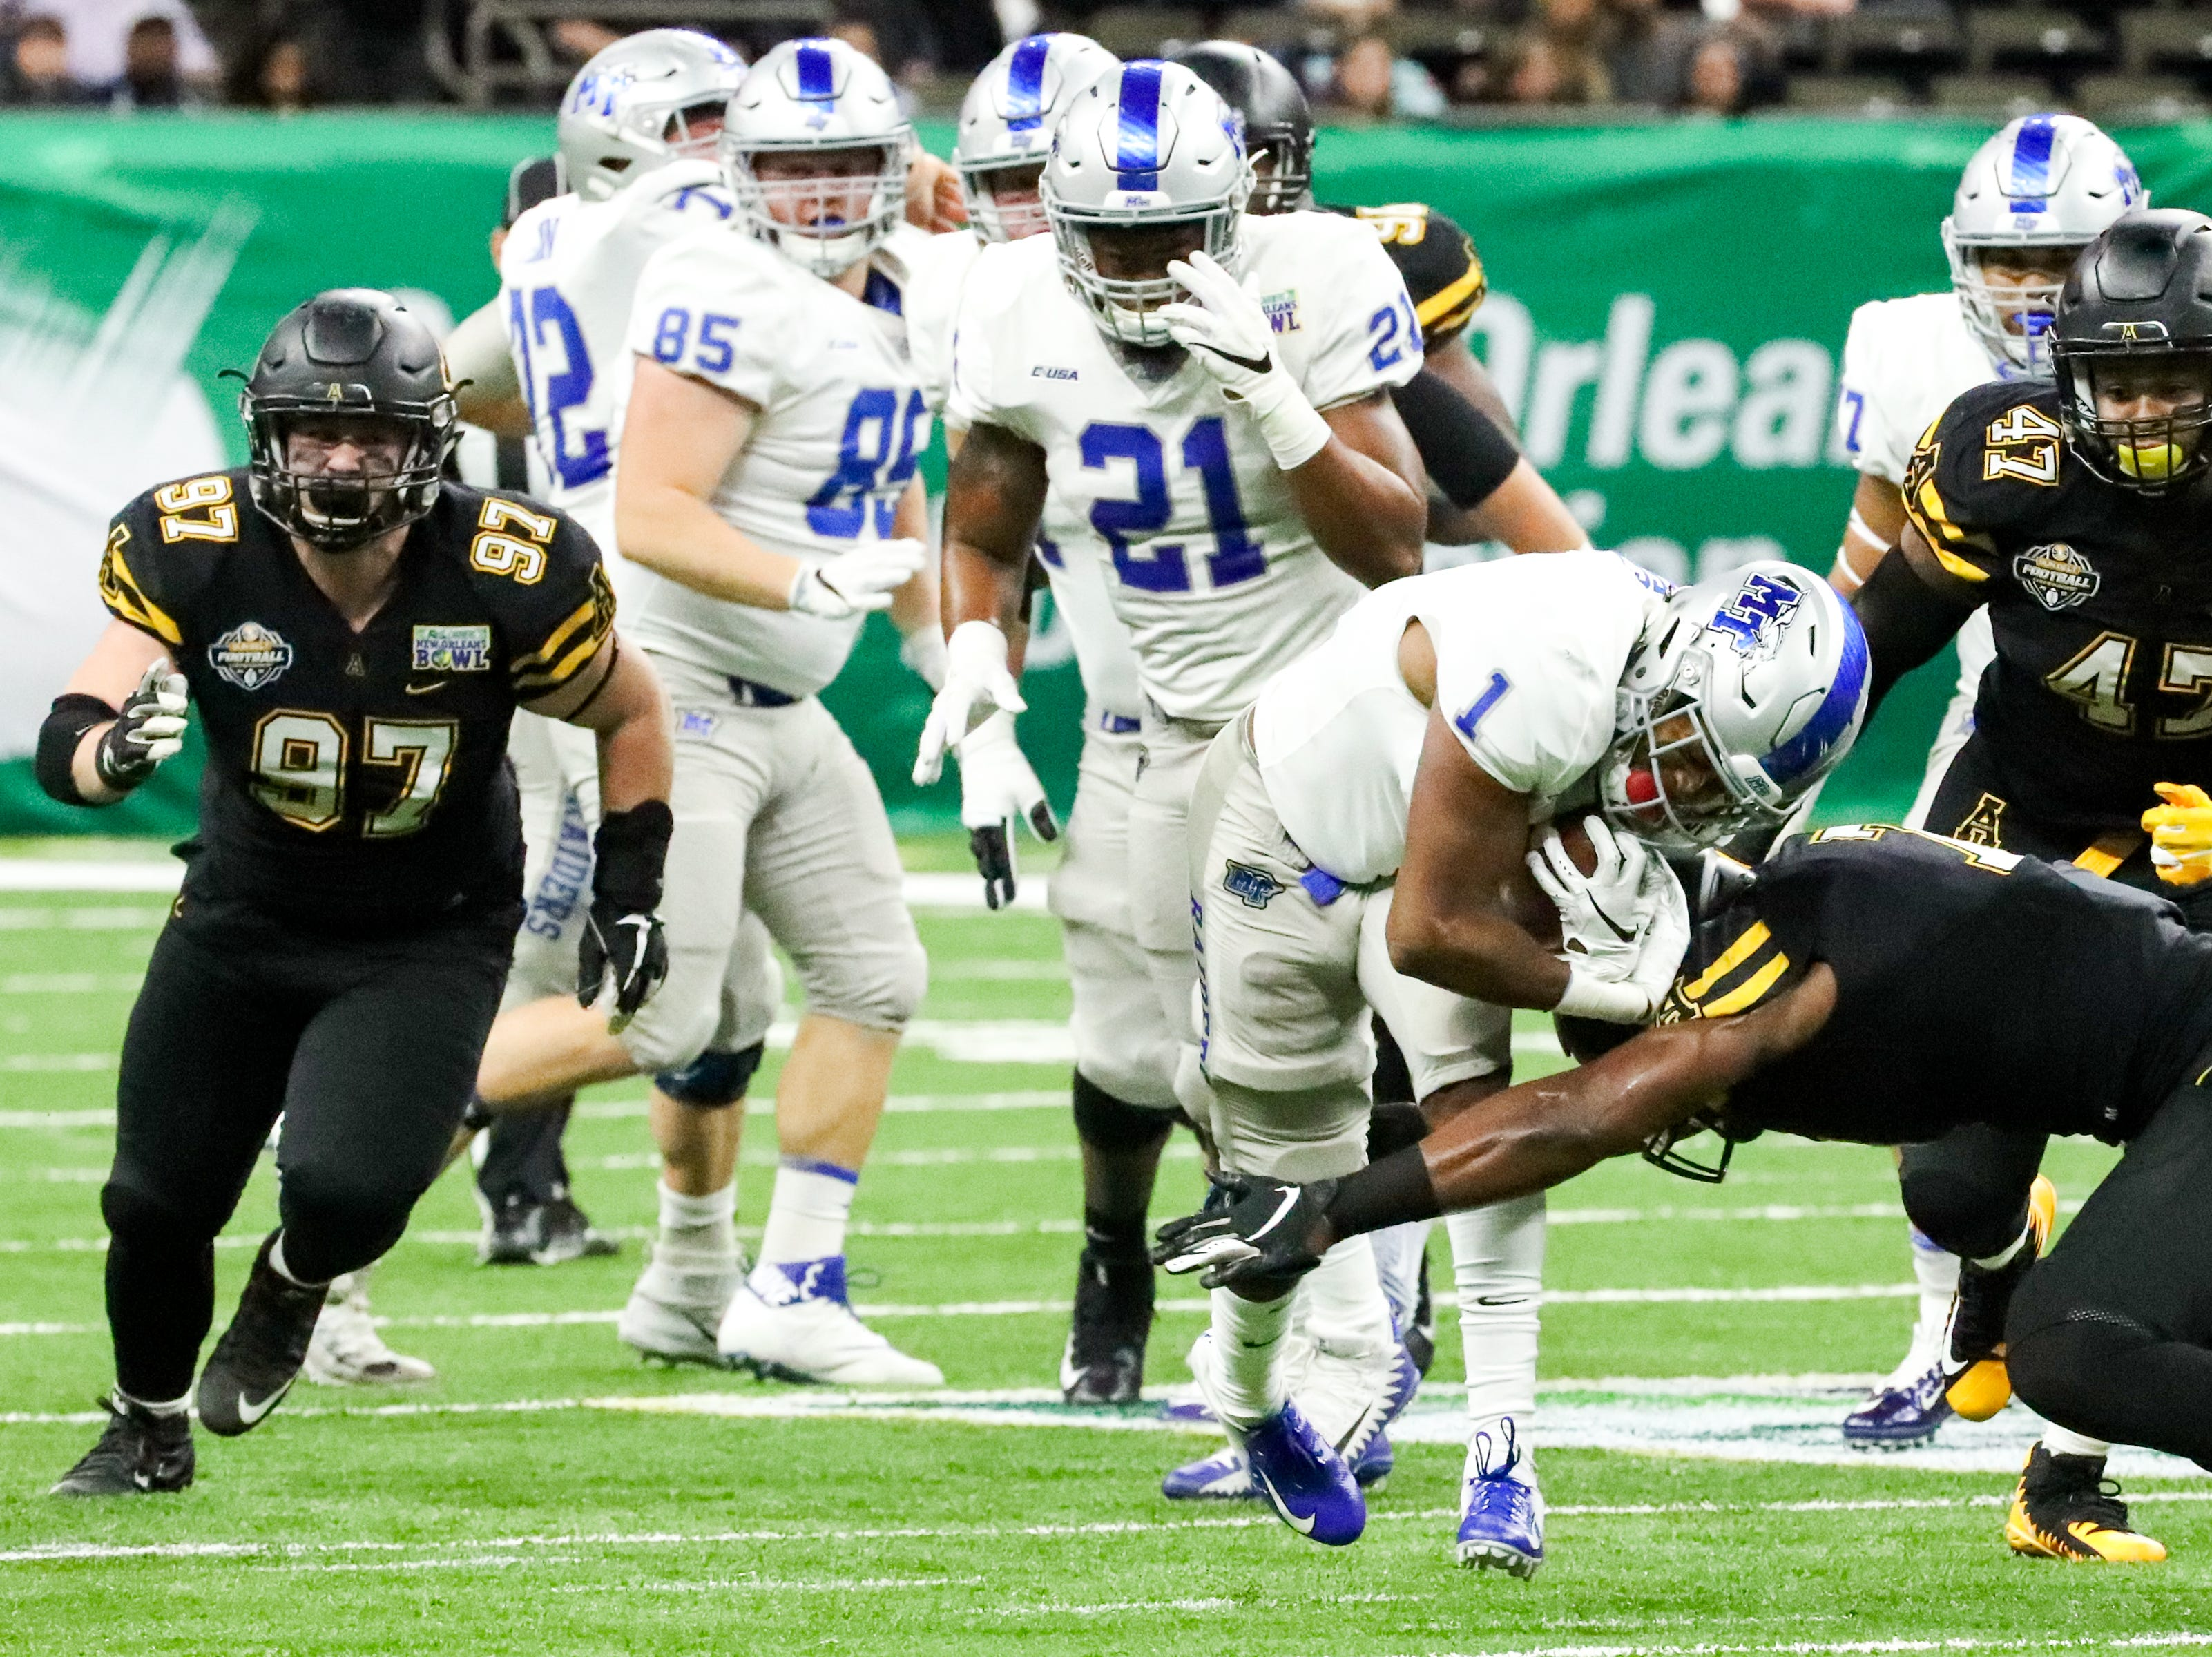 Middle Tennessee Blue Raiders running back Terelle West (1) is tackled by Appalachian State Mountaineers defensive back Josh Thomas (7) during the first half at the Mercedes-Benz Superdome Saturday, Dec. 15, 2018, in New Orleans, La.